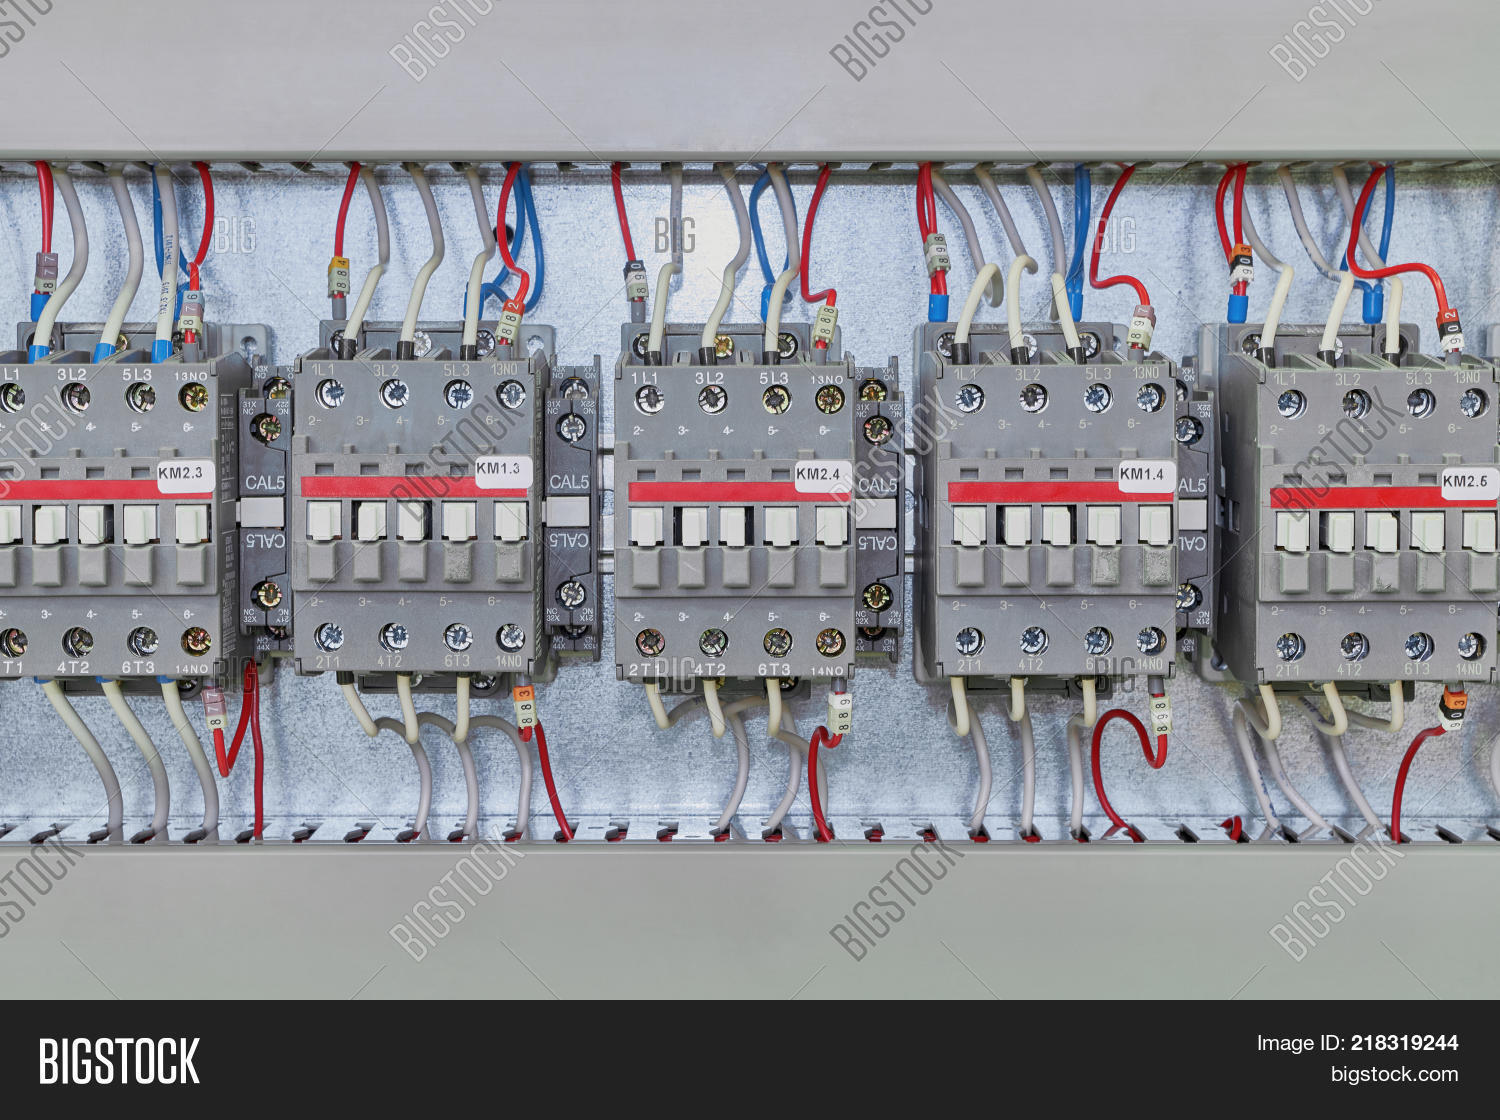 Several Electrical Image Photo Free Trial Bigstock Modern Wiring Contactor On A Mounting Panel In Closet Contactors To Start Motors